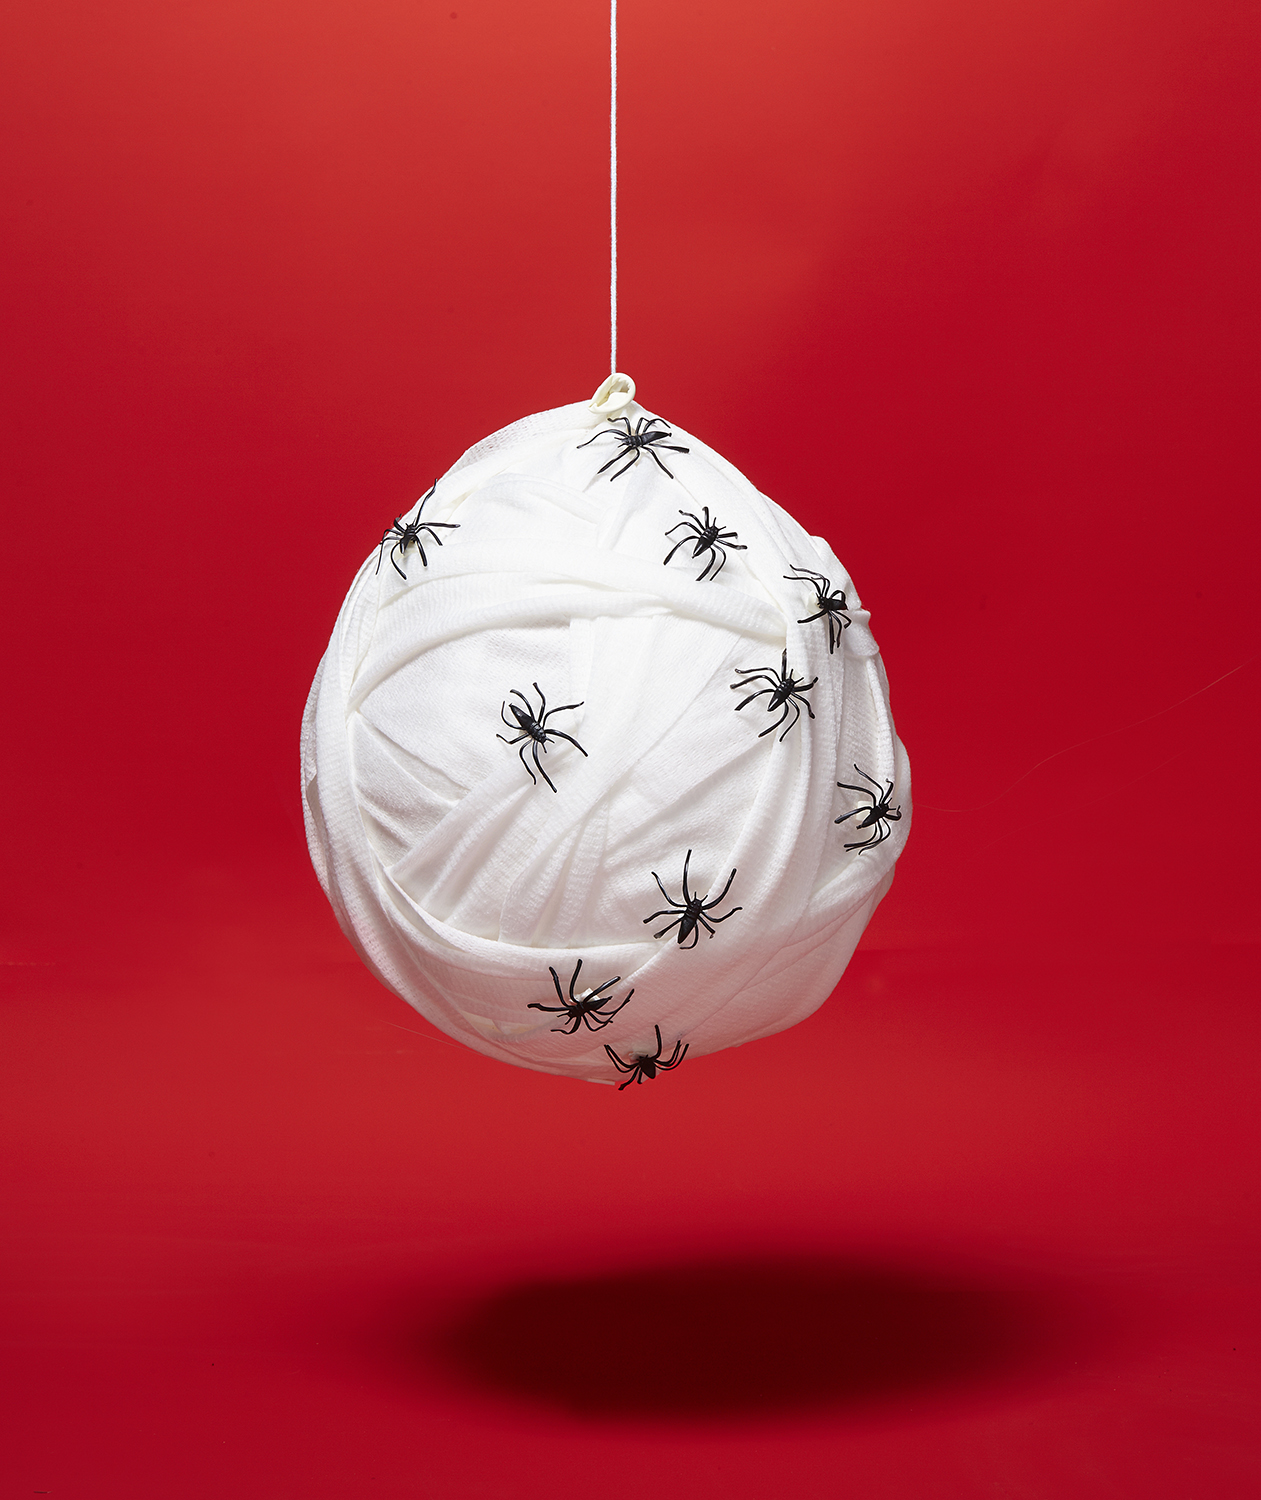 DIY Halloween decor ideas: Spider Nest made of rice-filled balloon wrapped in gauze